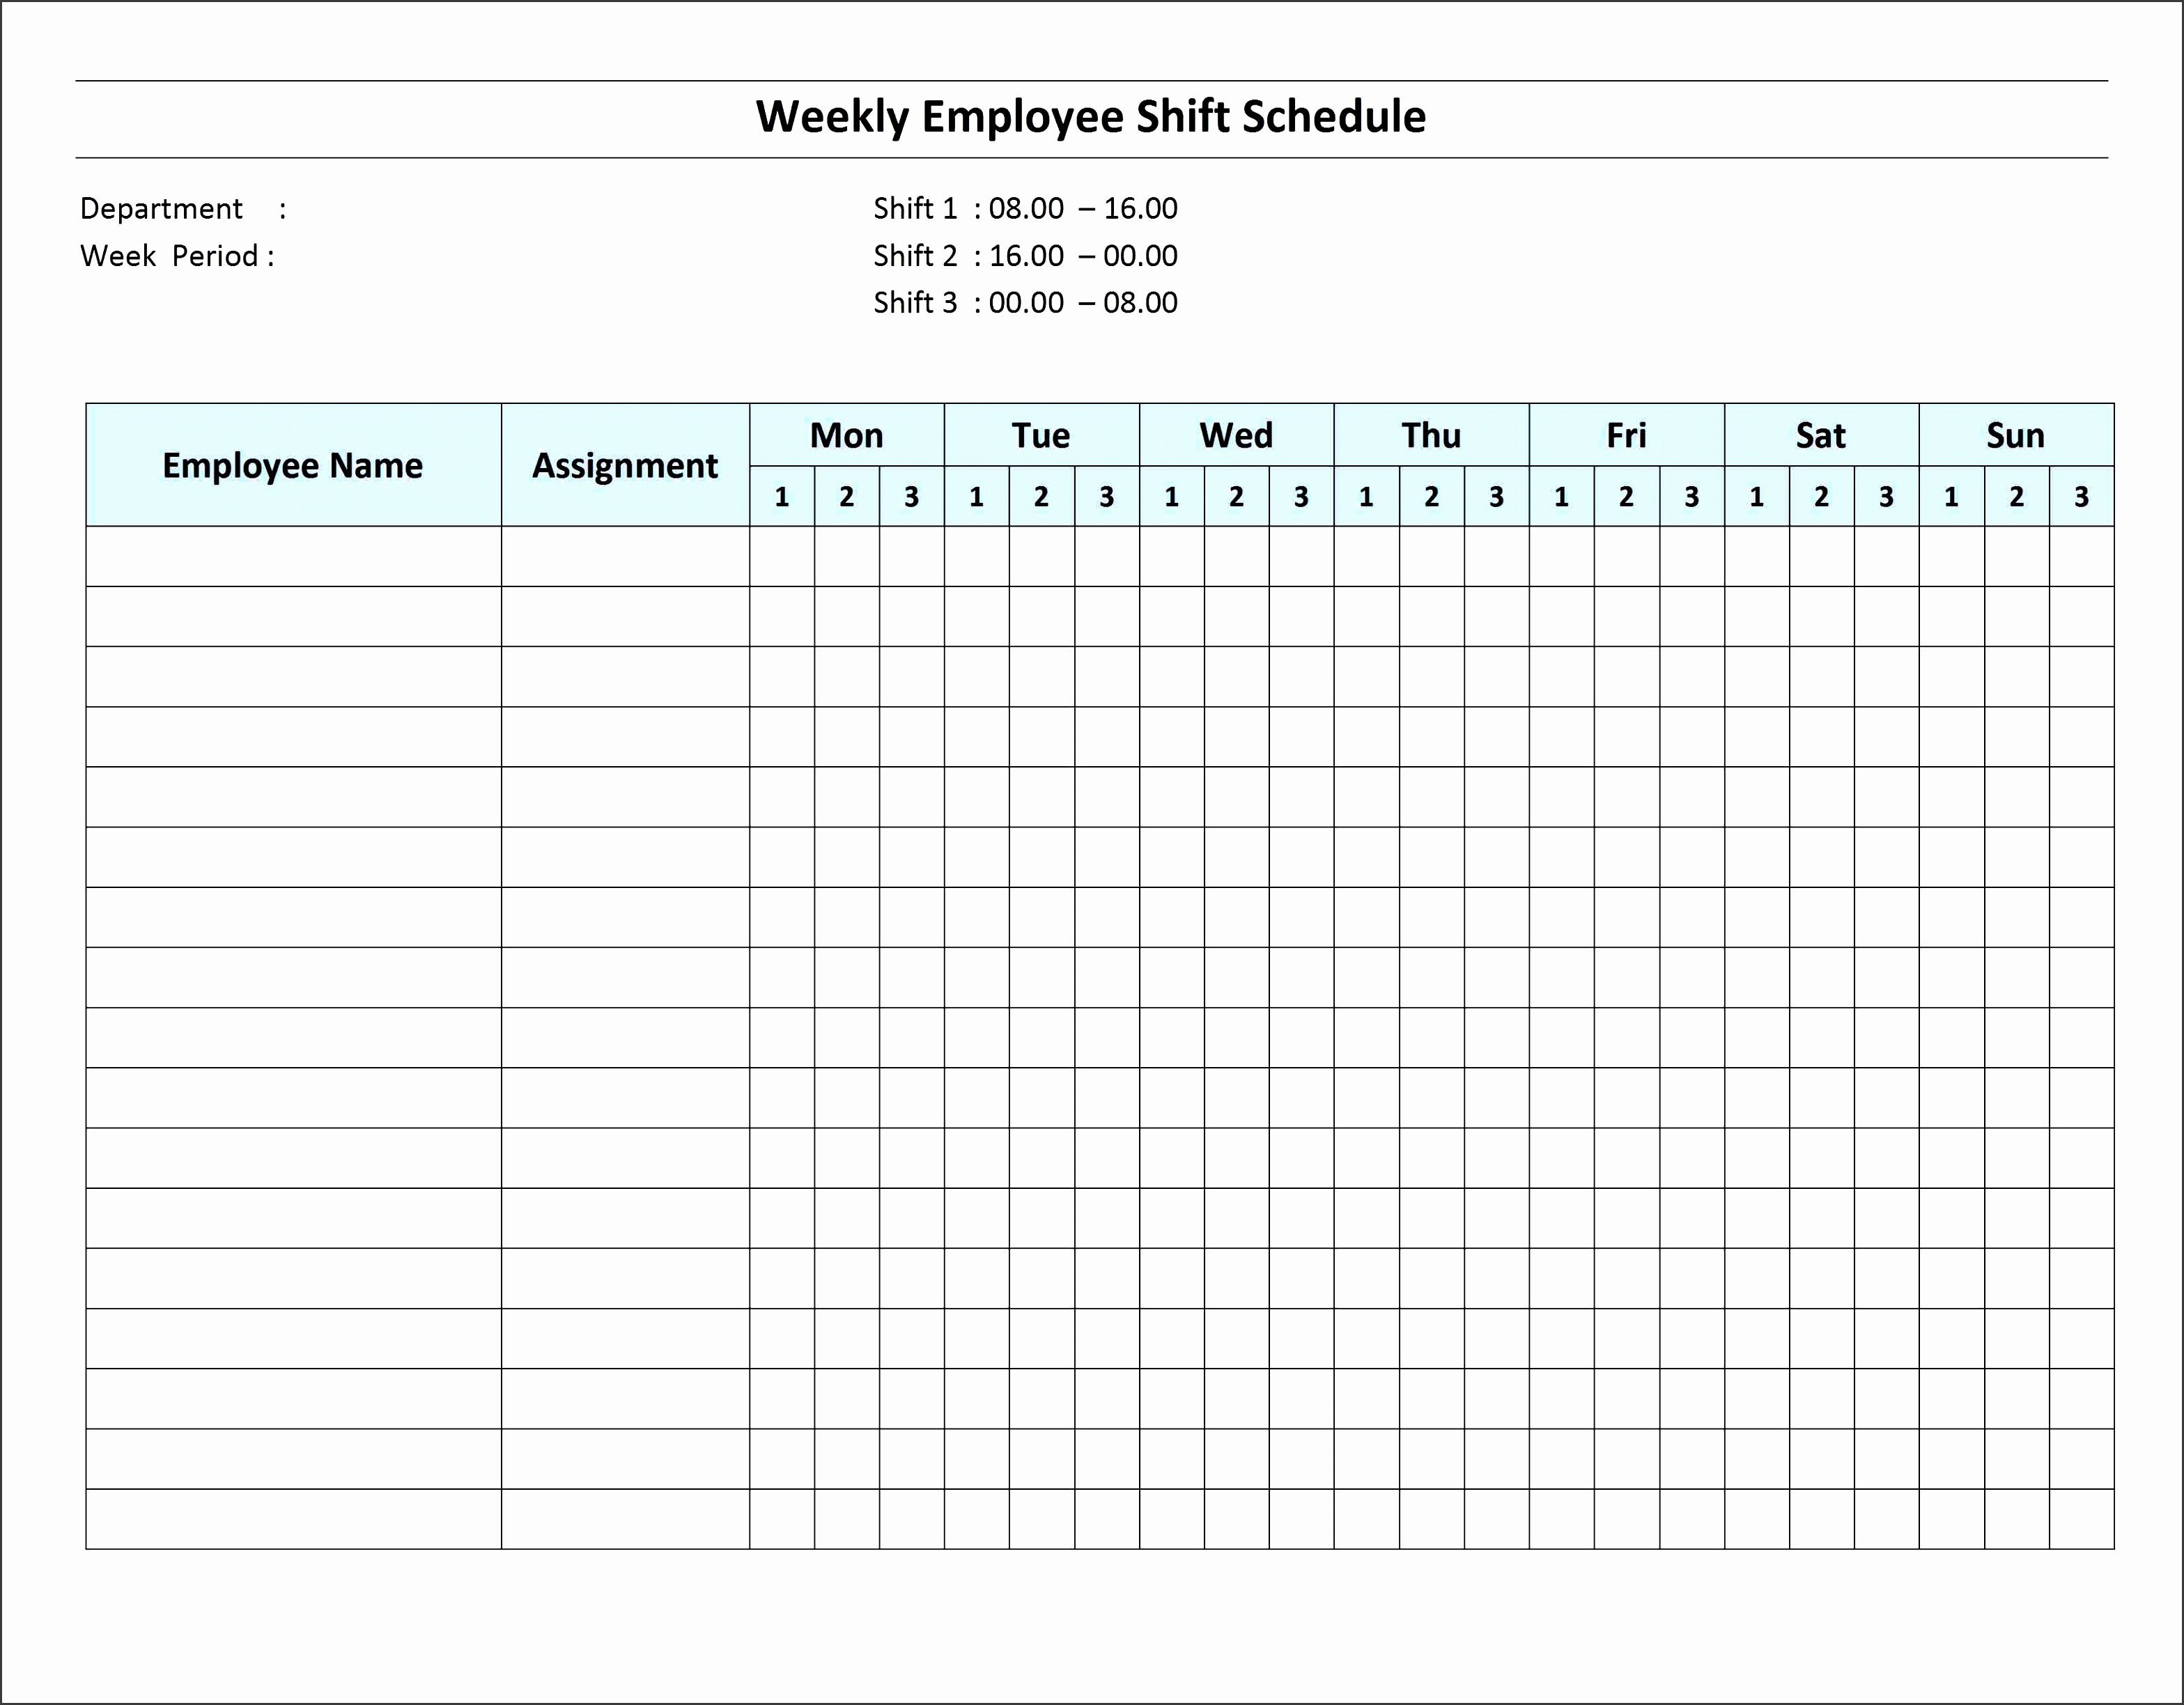 Weekly Employee Schedule Template Fresh 6 Excel Daily Work Schedule Sampletemplatess